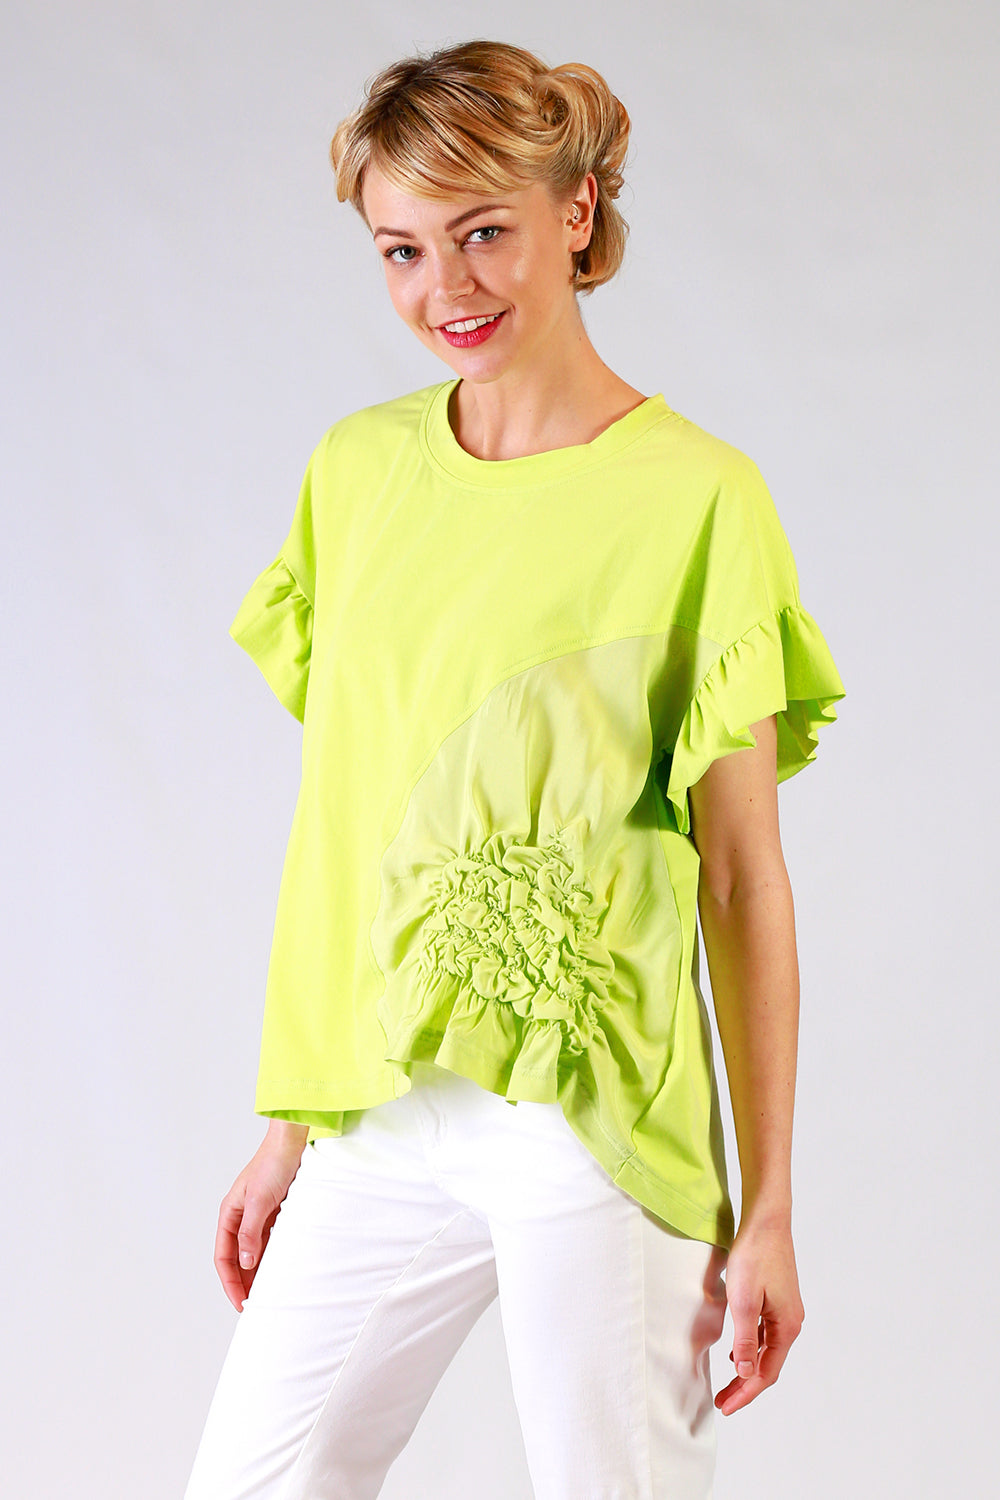 Scrunchie T Shirt | Scrunchie Tee | Green Tee | Summer 19 | Annah Stretton Fashion NZ